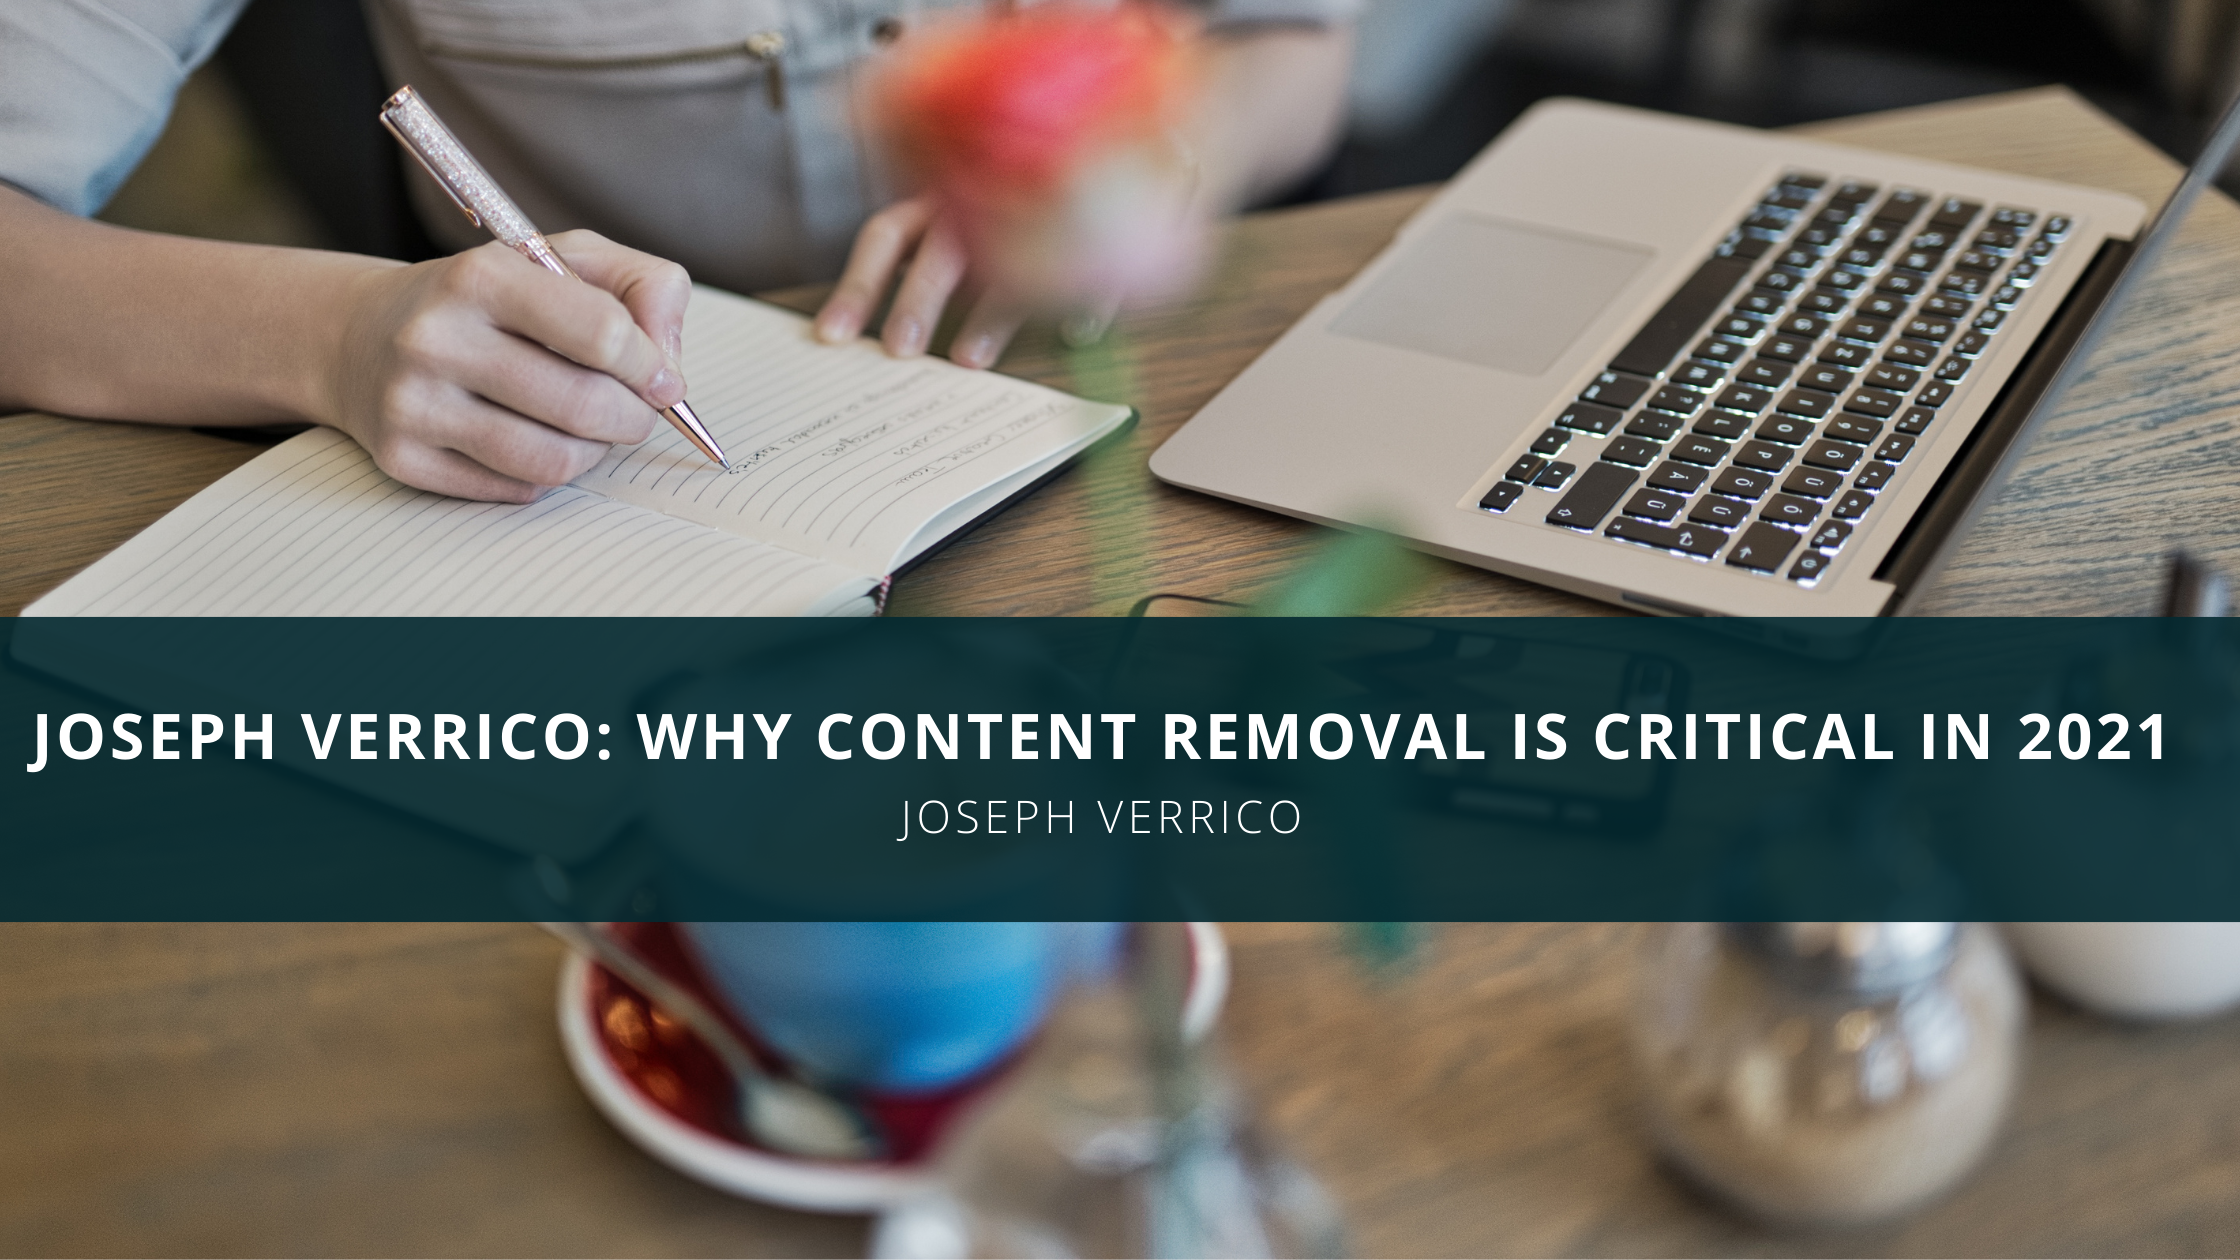 Joseph Verrico: Why Content Removal is Critical in 2021